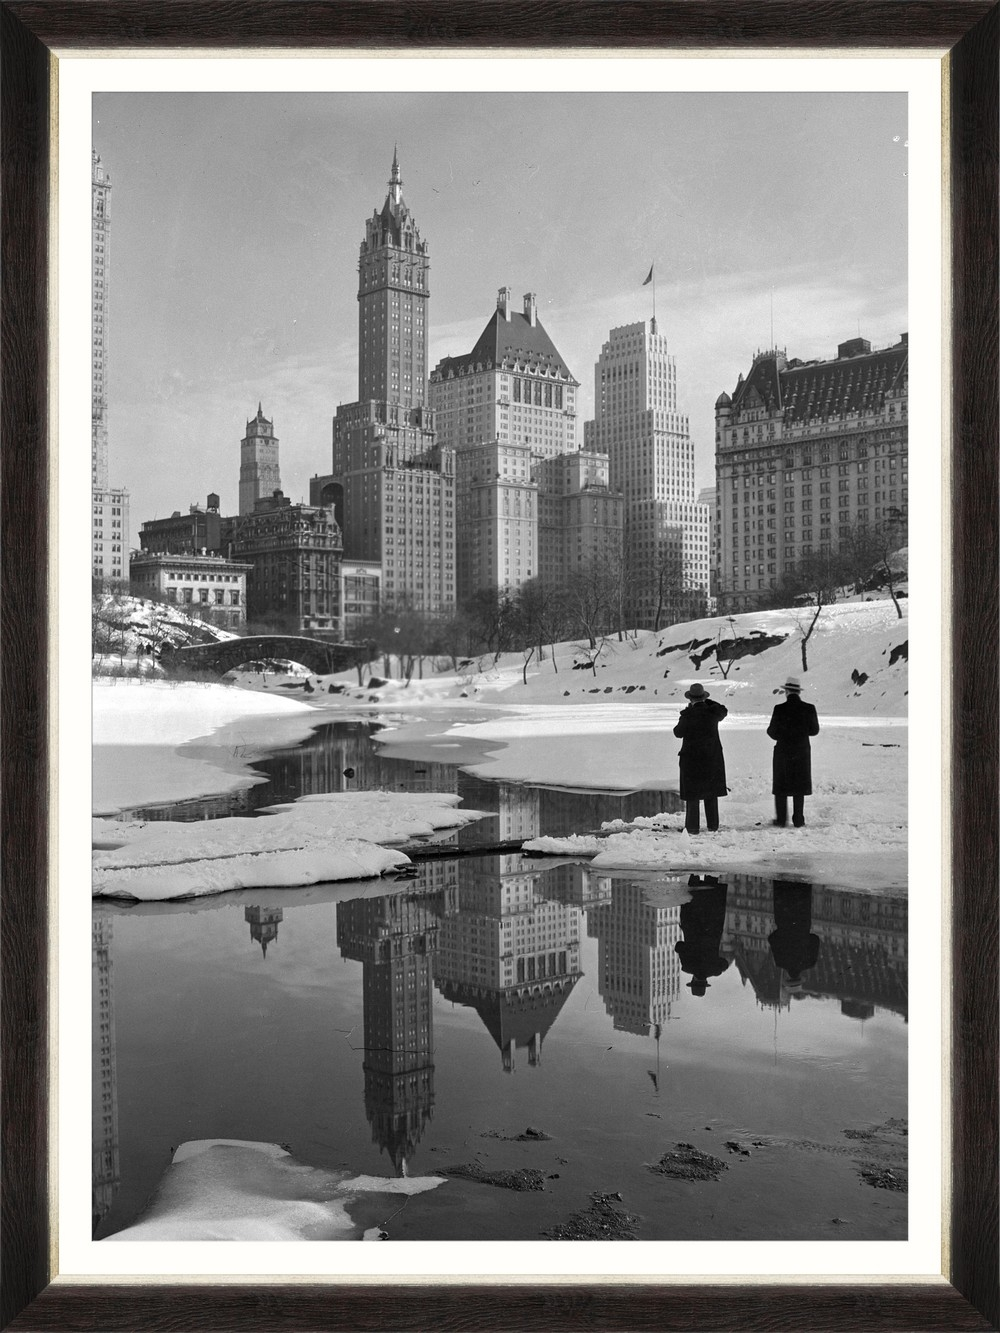 Tablou Framed Art NY Central Park imagine